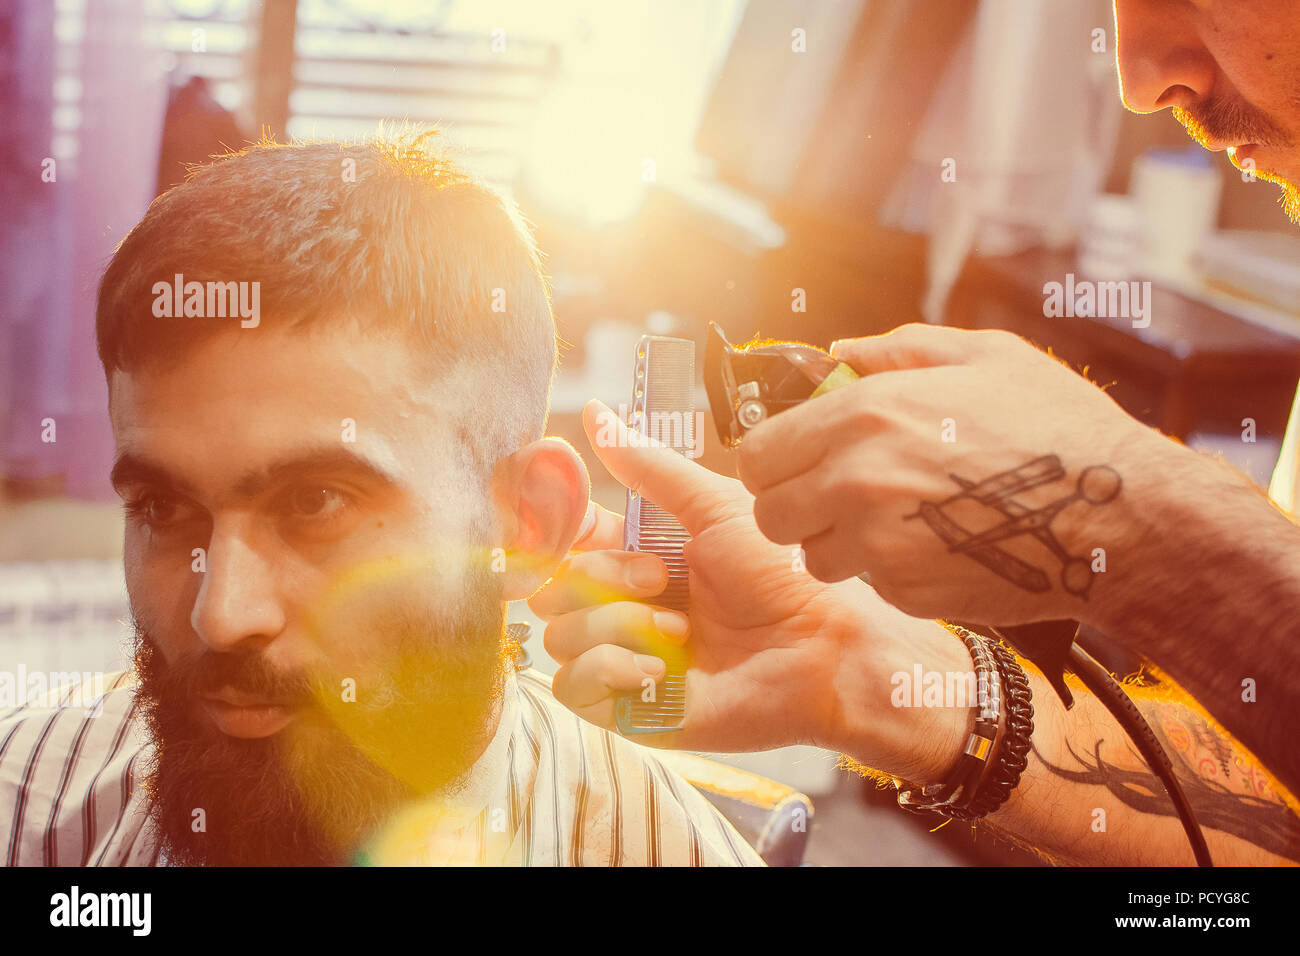 Barber does a haircut on his head with a trimmer to a young handsome guy with a mustache and beard. Men's hair salon. Stock Photo